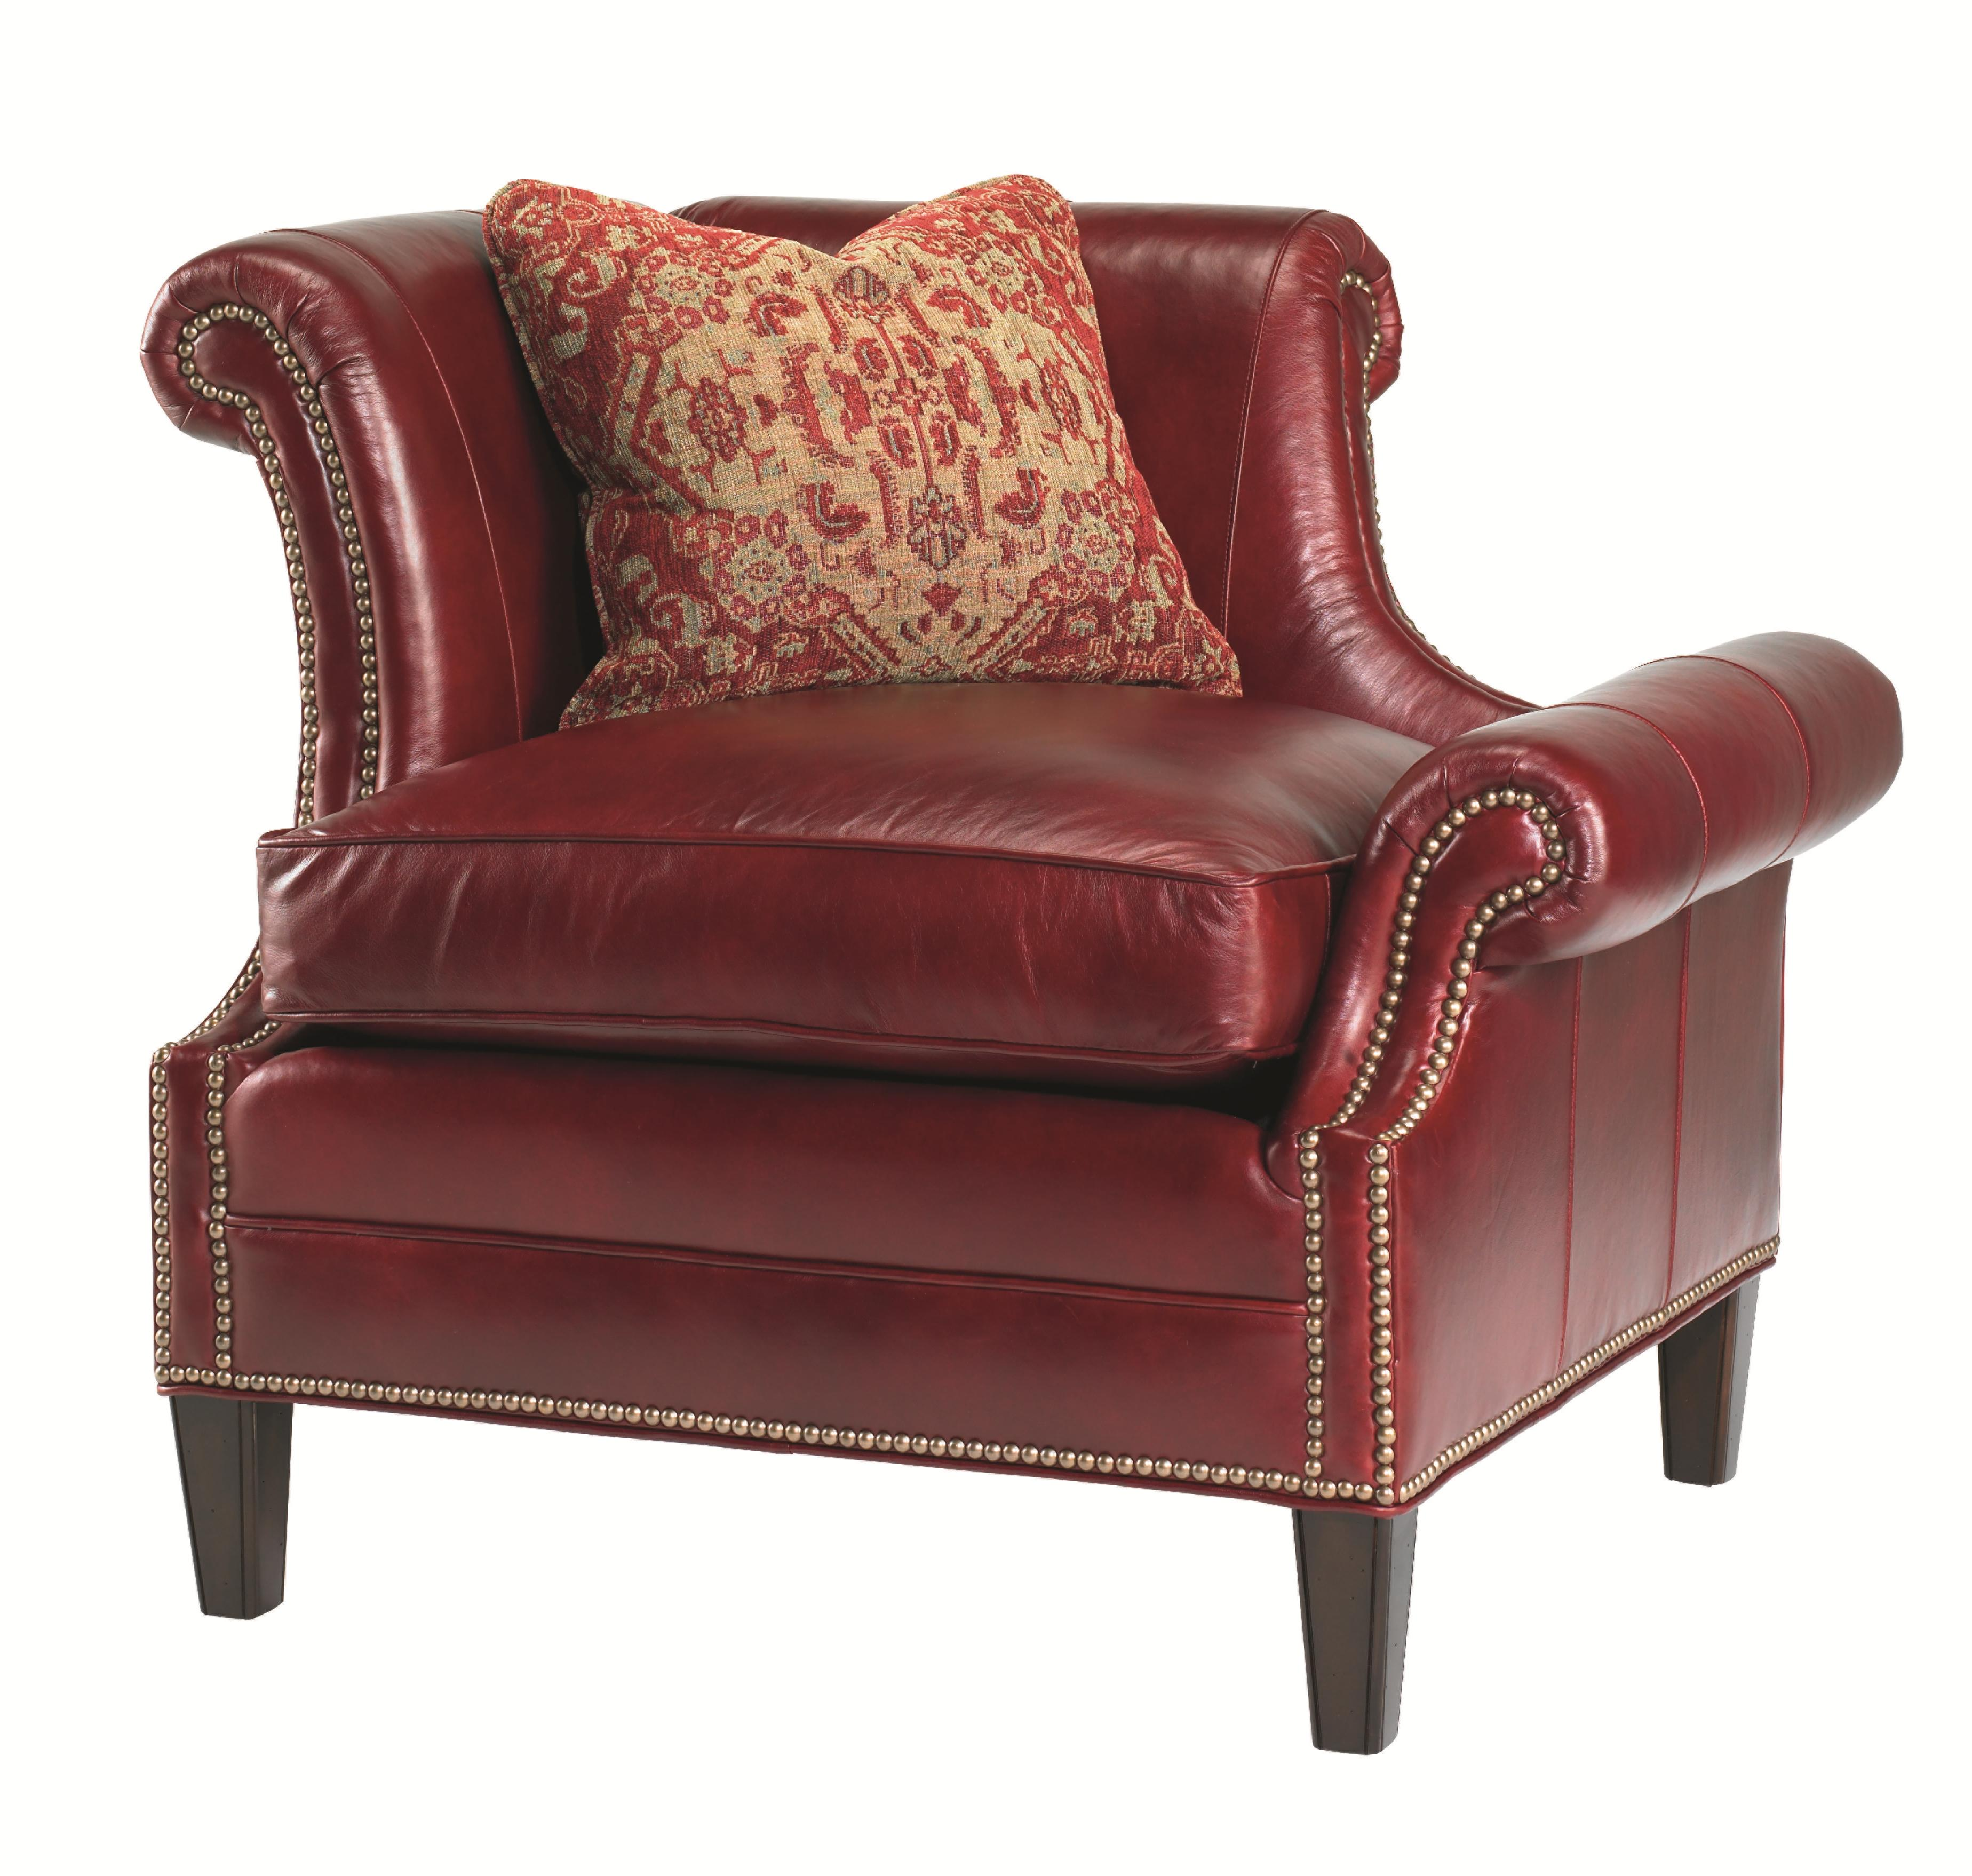 Leather Braddock Laf Upholstered Chair by Lexington at Baer's Furniture